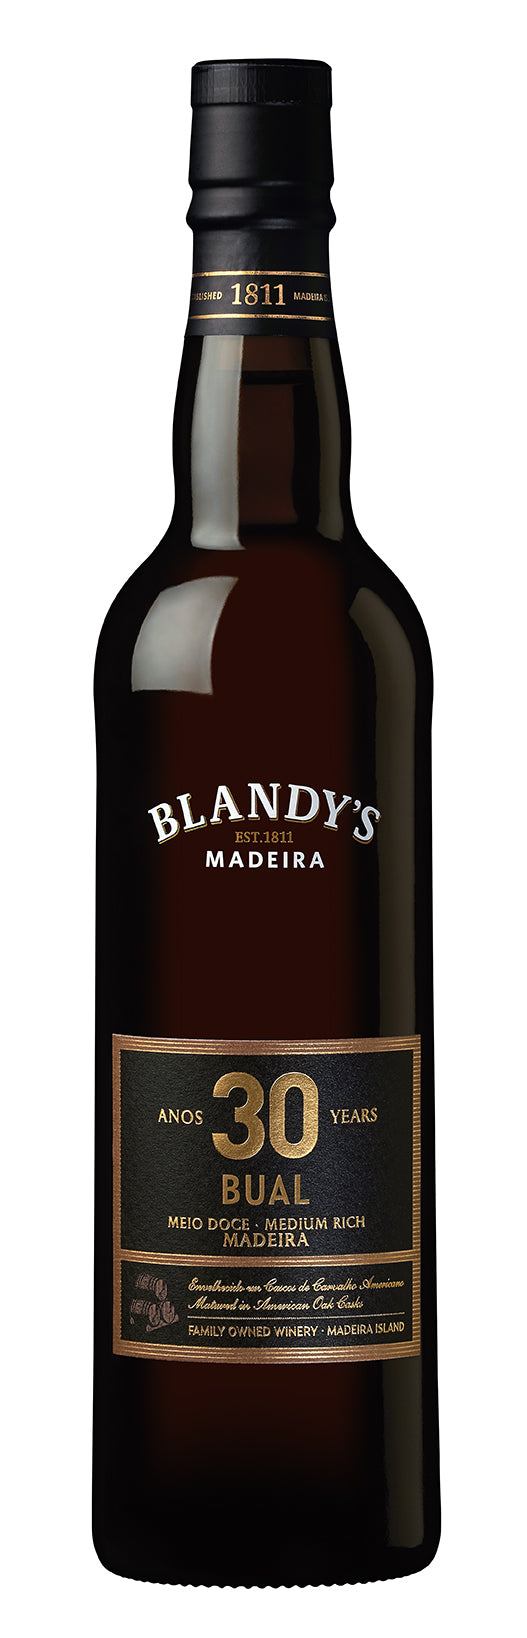 Blandy's 30 Years Old Bual Madeira